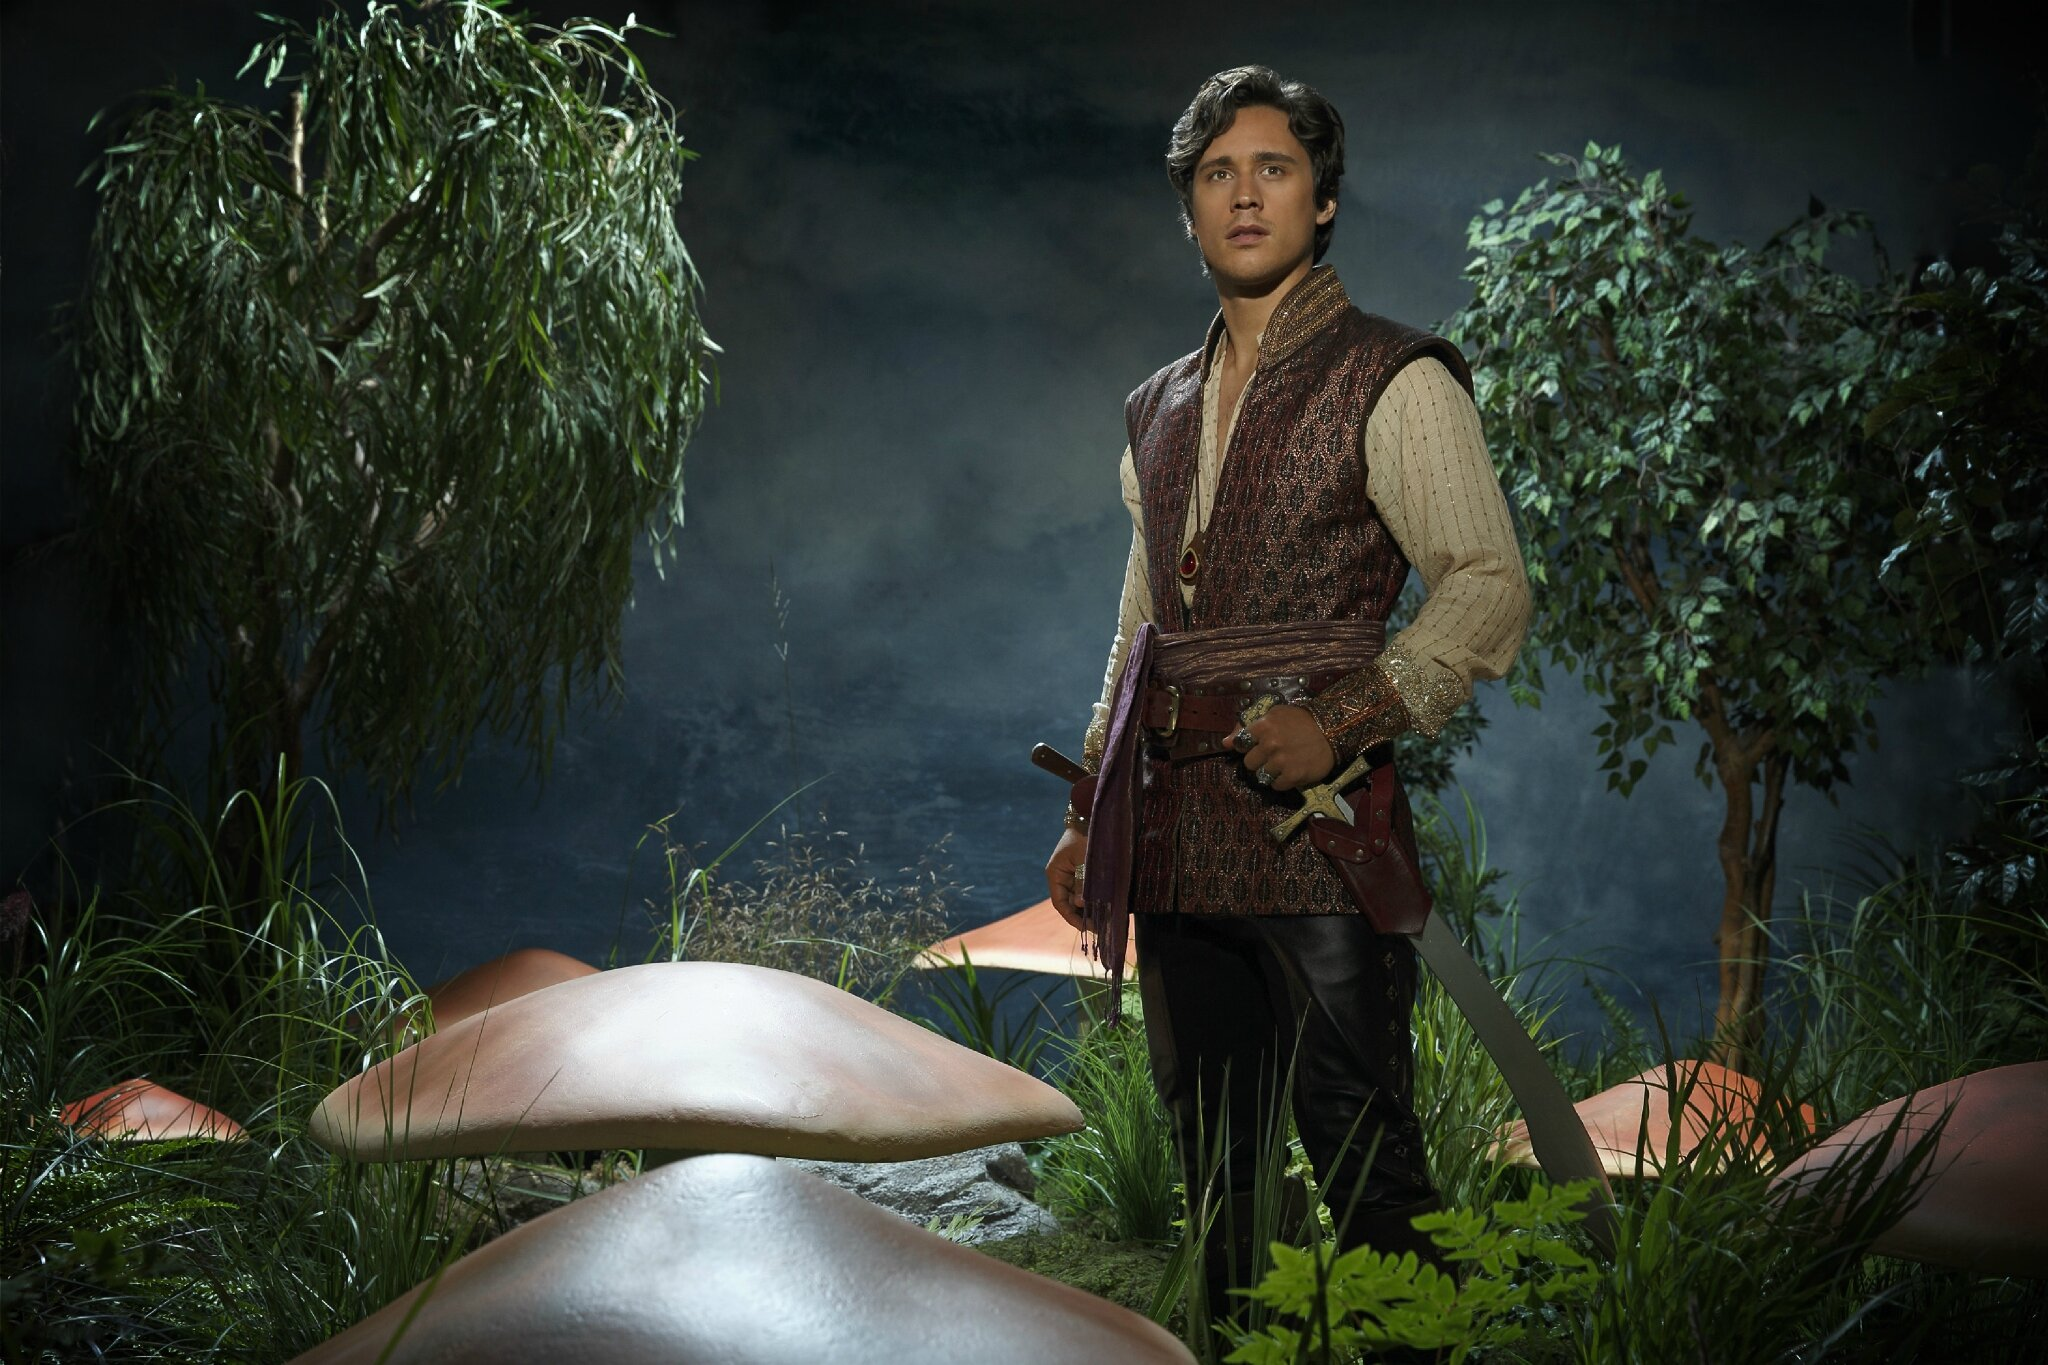 Peter-Gadiot Once Upon A Time in Wonderland